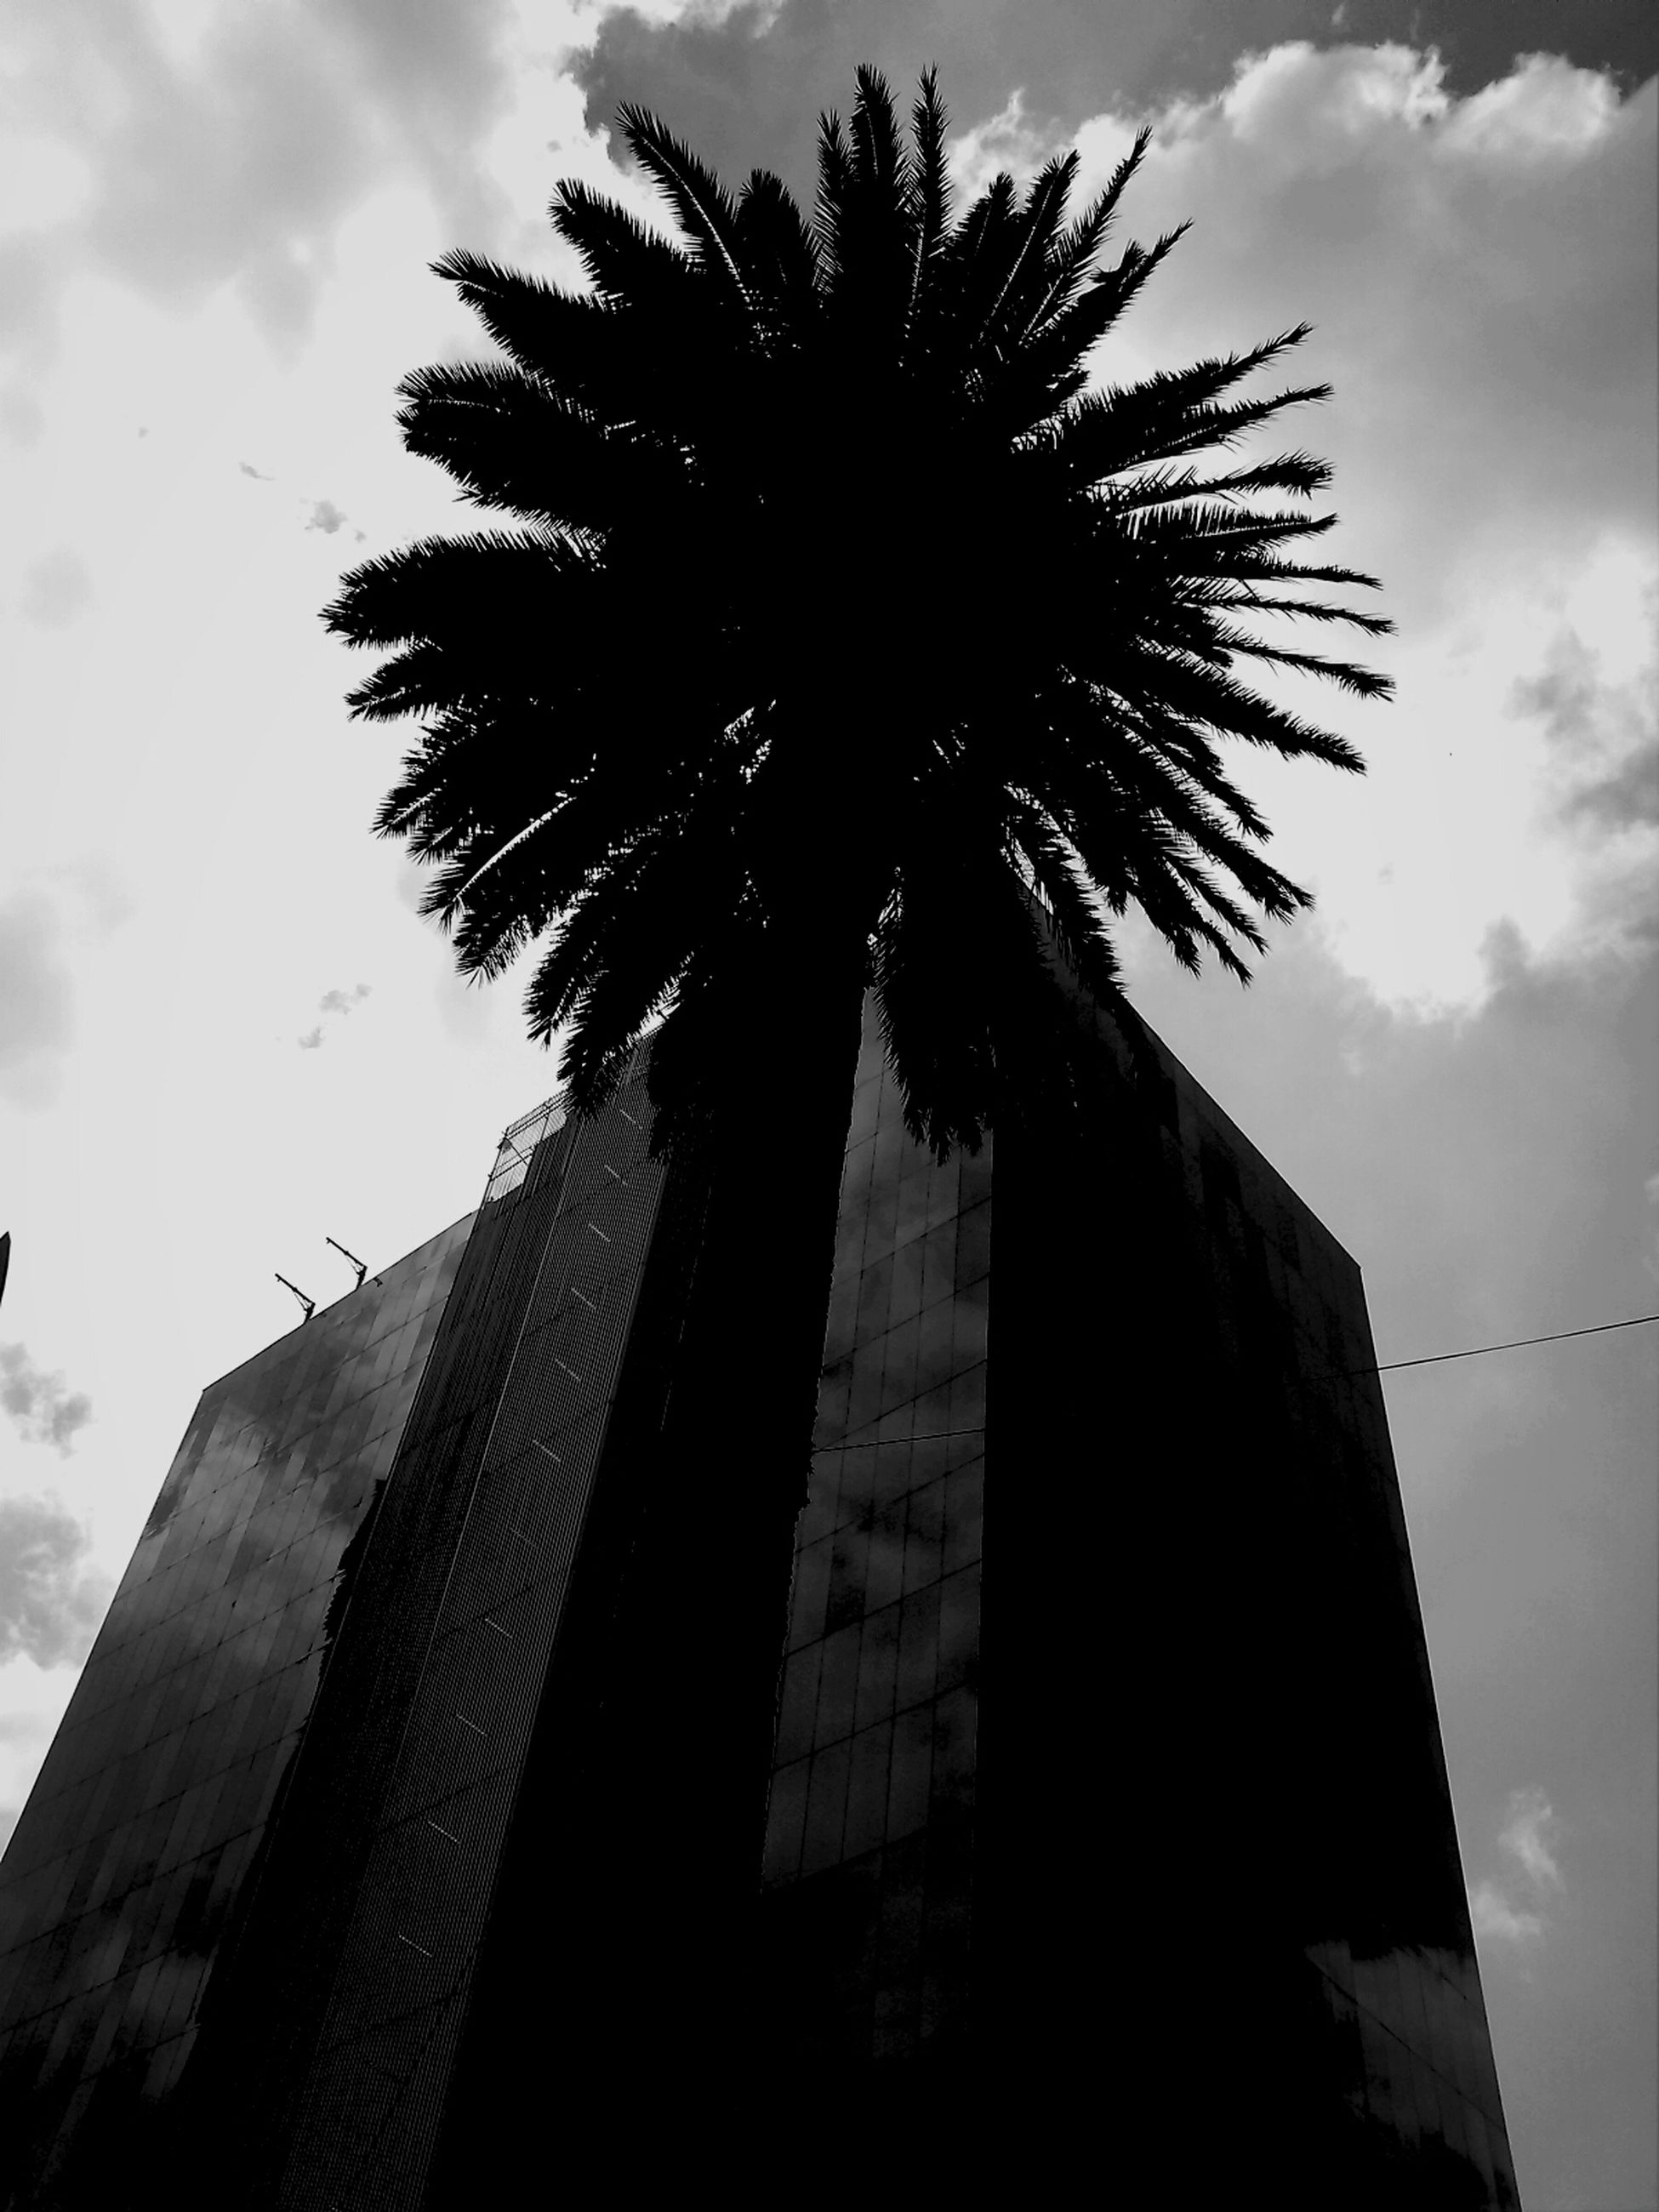 low angle view, palm tree, sky, tree, architecture, built structure, tall - high, building exterior, cloud - sky, silhouette, tree trunk, growth, cloud, tall, outdoors, day, cloudy, nature, branch, no people